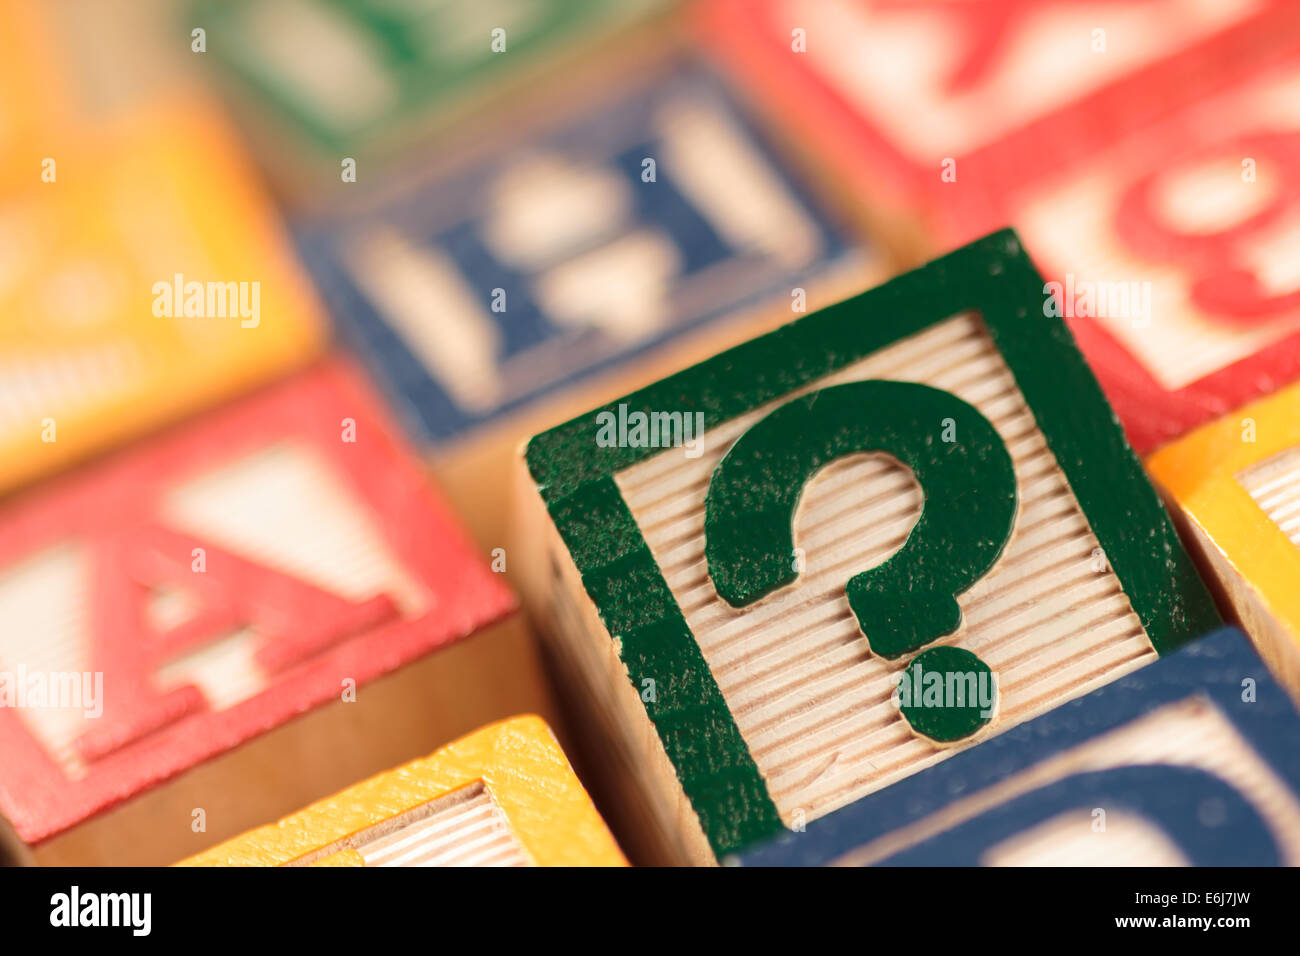 Wooden, colorful educational blocks with selective focus on question mark. - Stock Image